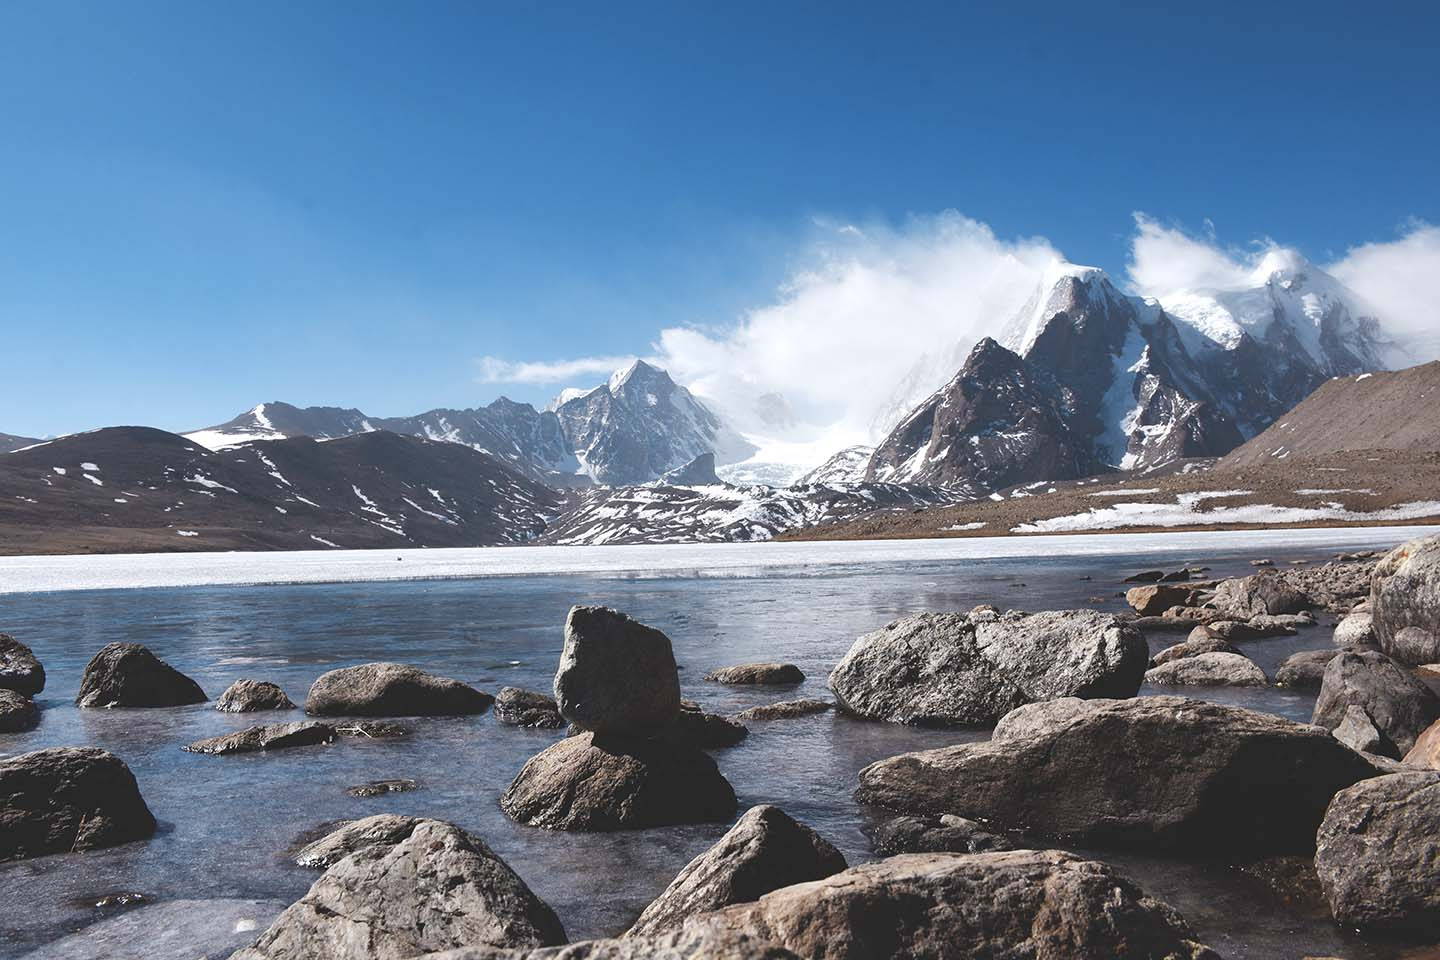 Gurudongmar Lake surrounded by snow capped mountains